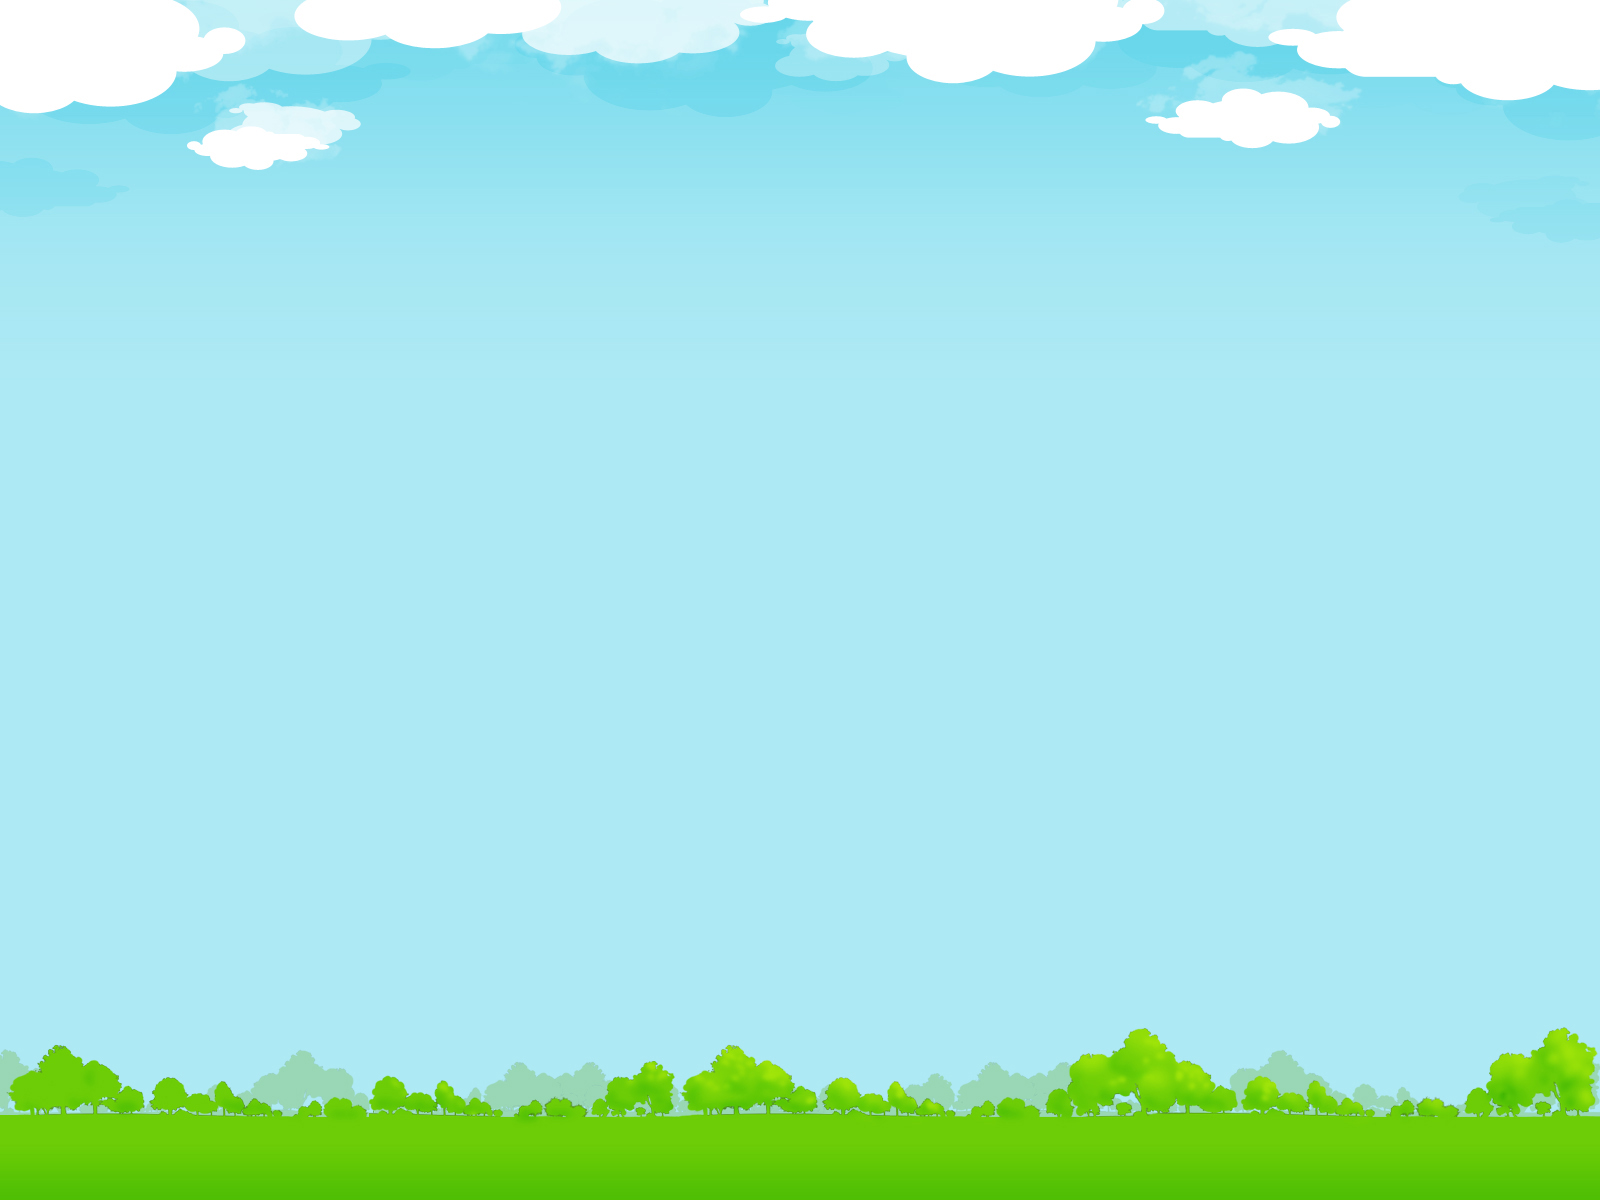 Free Natural Background Cliparts, Download Free Clip Art.